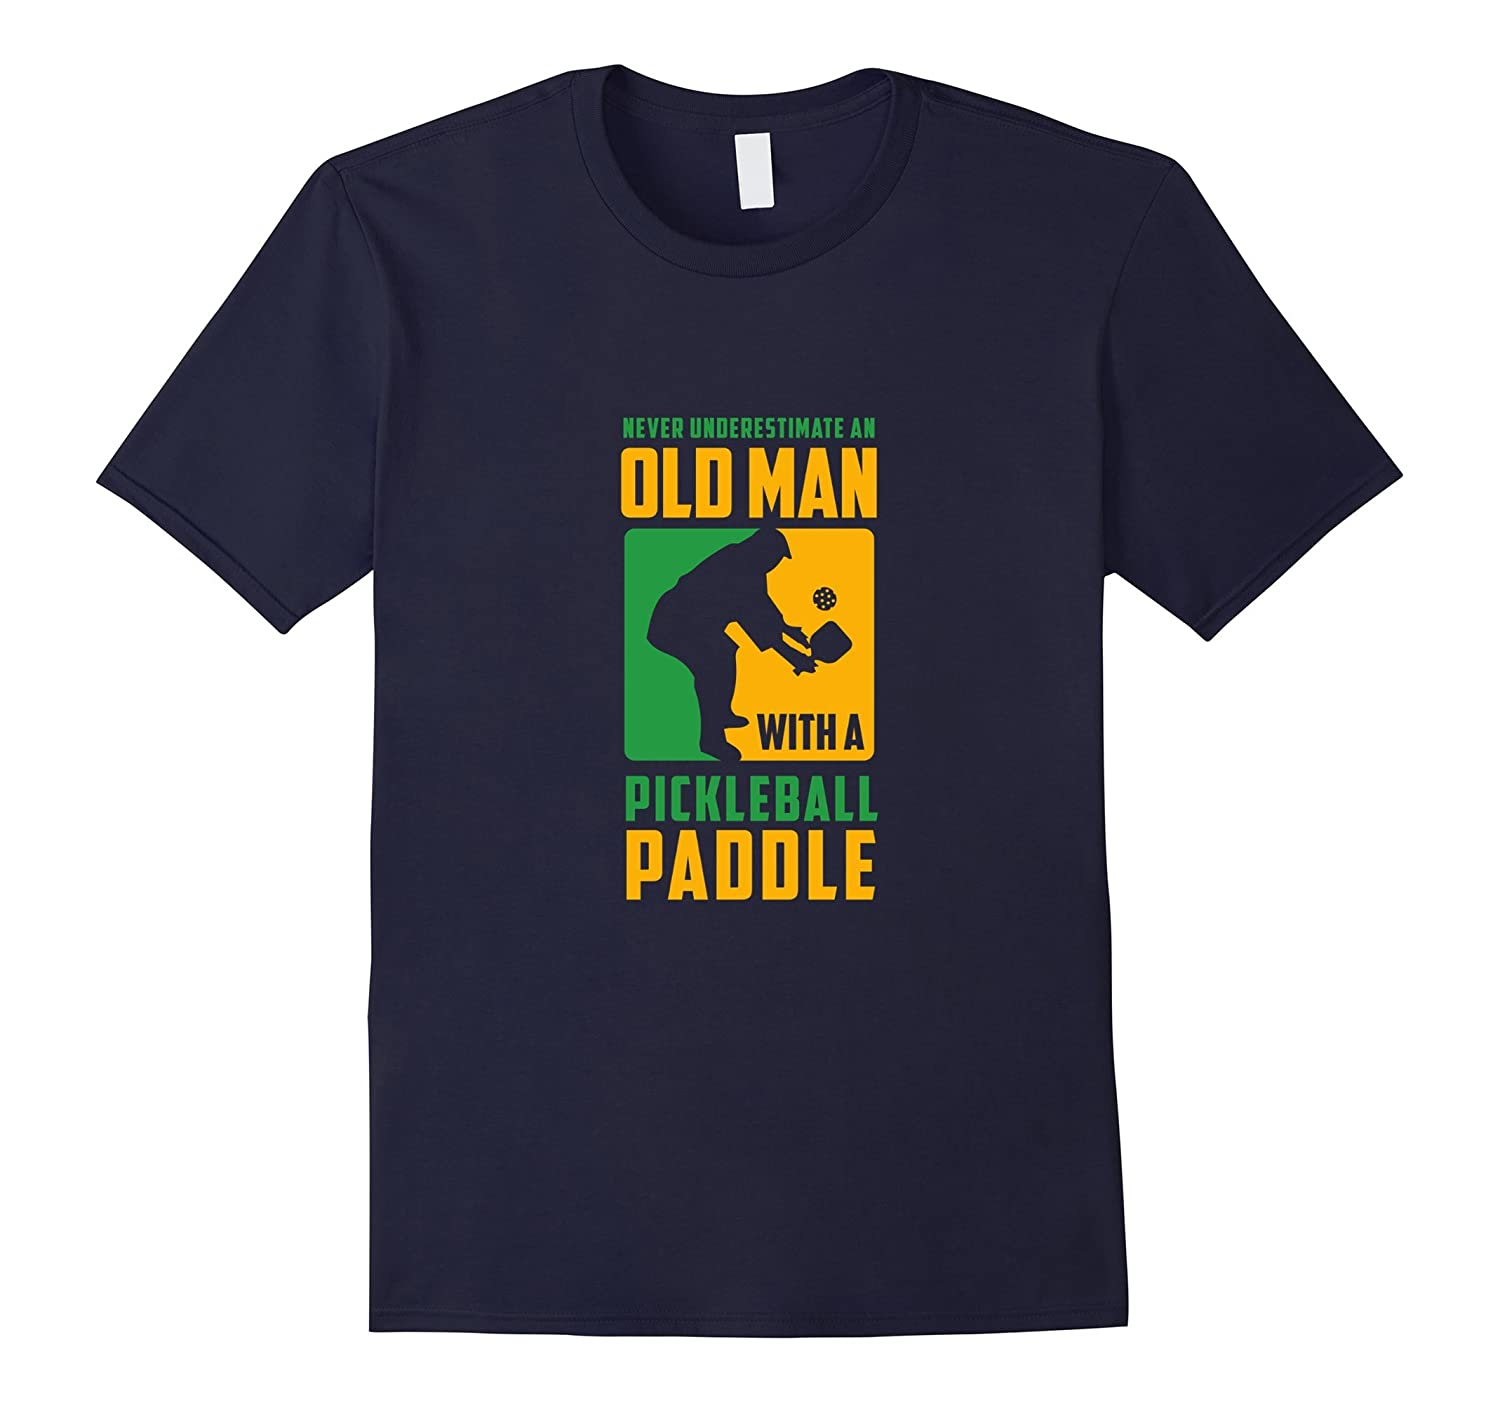 Never Underestimate Old Man with Pickleball Paddle T-shirt-BN